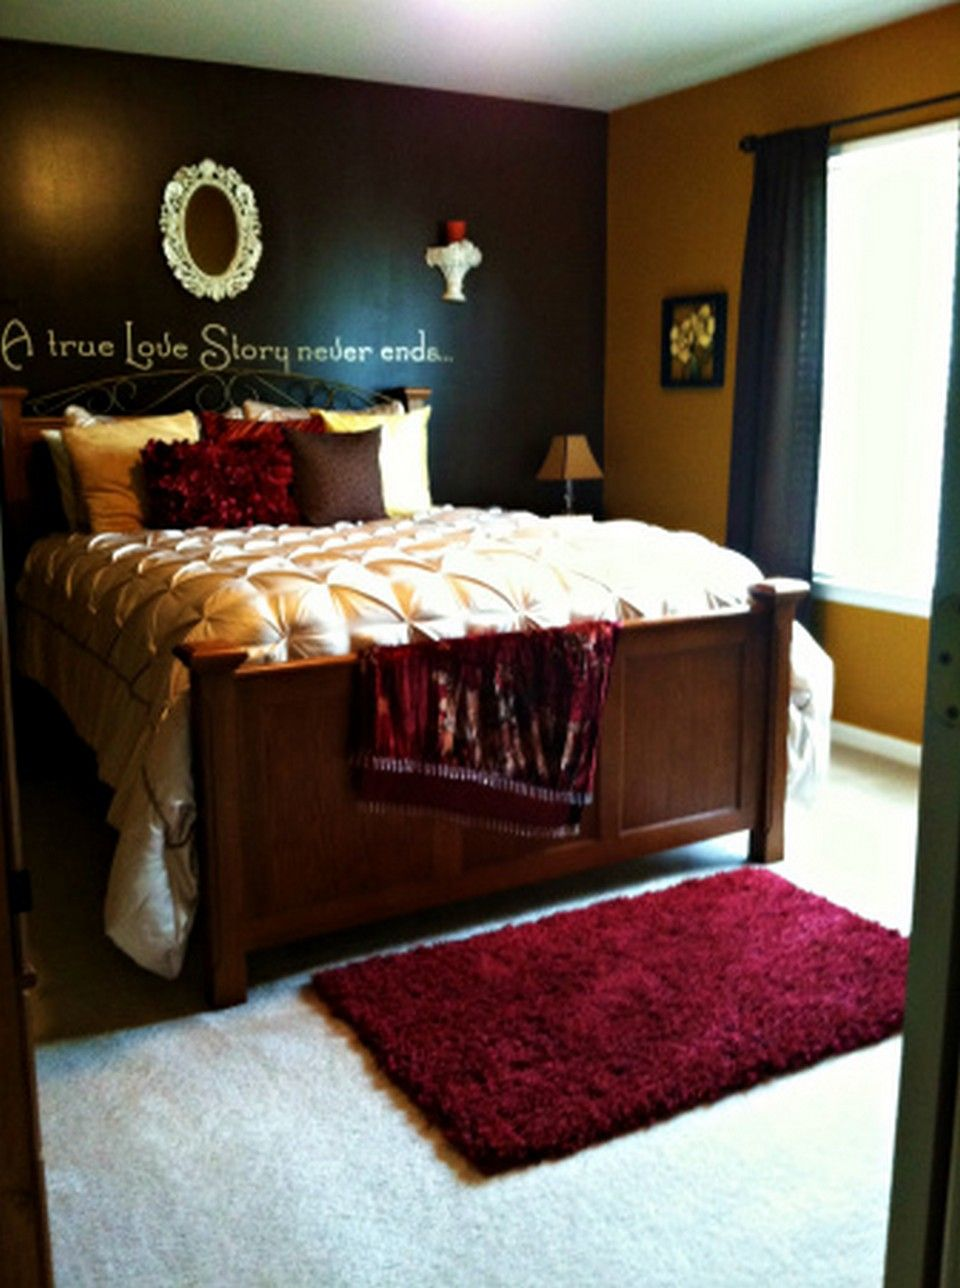 Bedroom Design Ideas On A Budget Delectable 95 Brilliant Romantic Bedroom Design Ideas On A Budget  Romantic Decorating Design